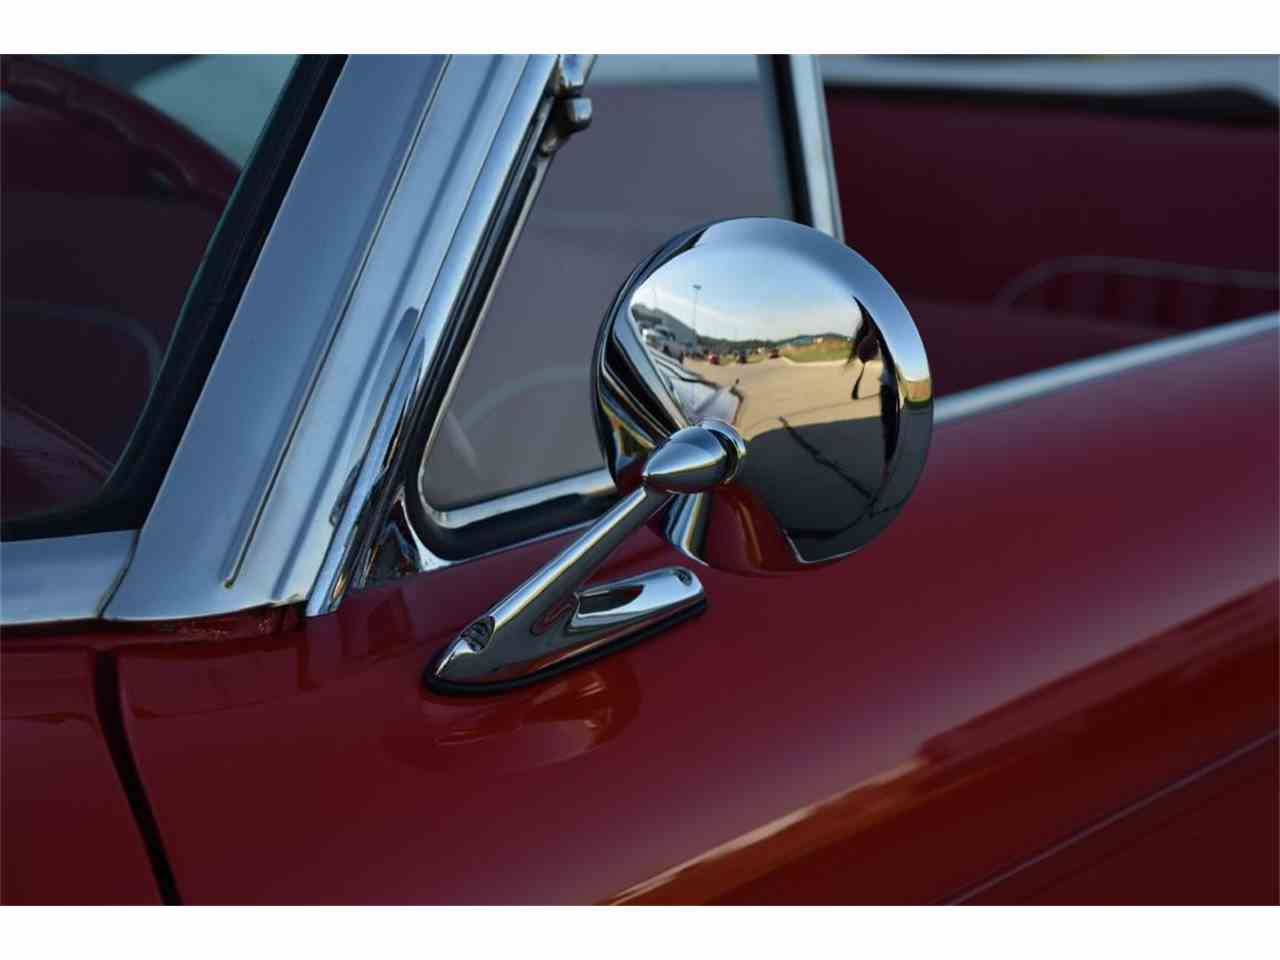 Large Picture of 1963 Ford Falcon Futura located in Sioux City Iowa Offered by Jensen Dealerships - LUN9